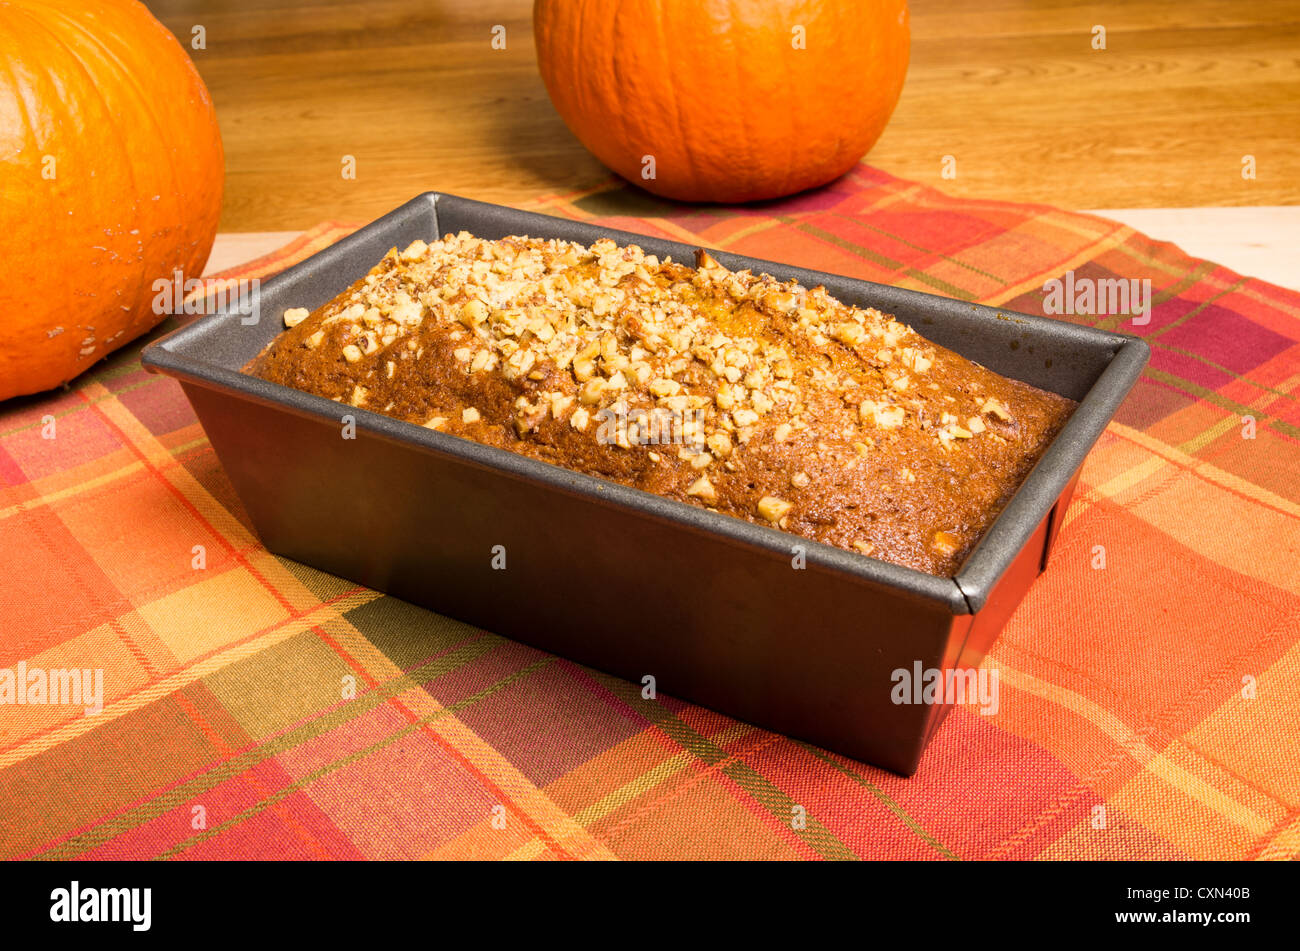 A pan of fresh pumpkin bread just out of the oven - Stock Image